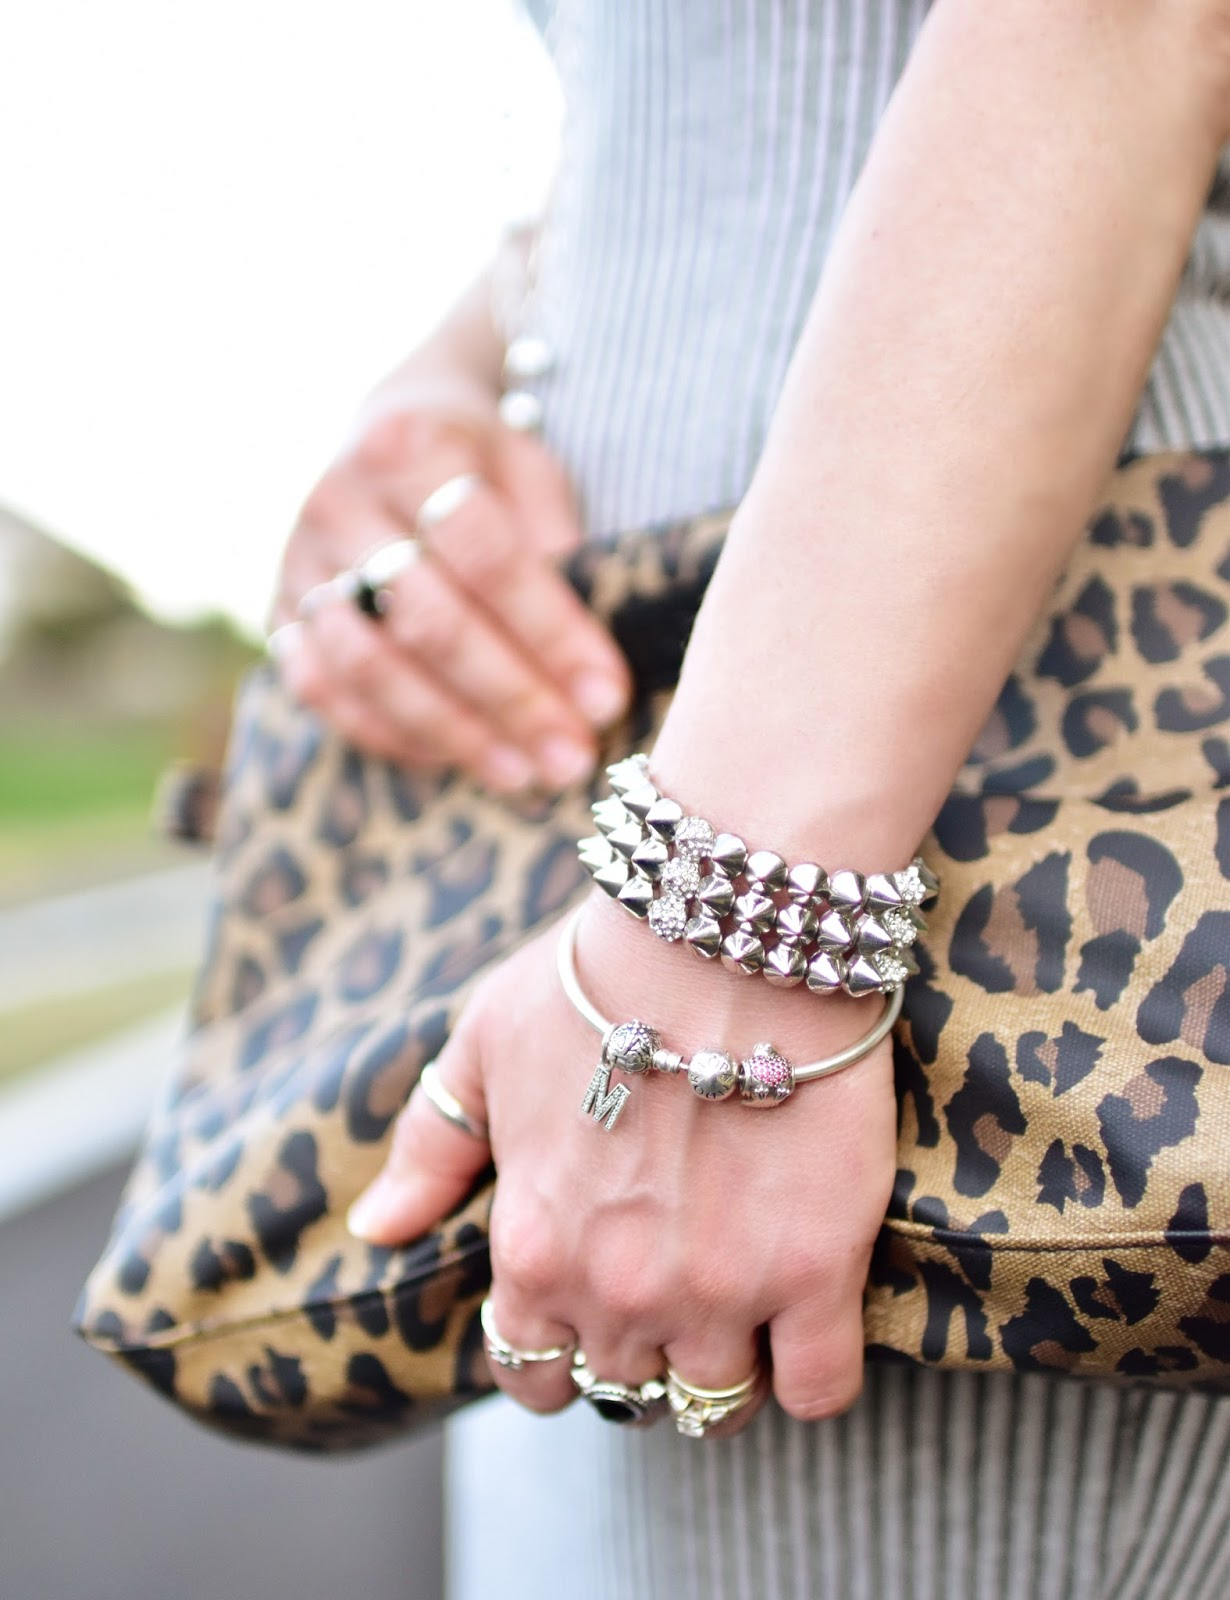 leopard-patterned clutch, stacked bracelets and rings